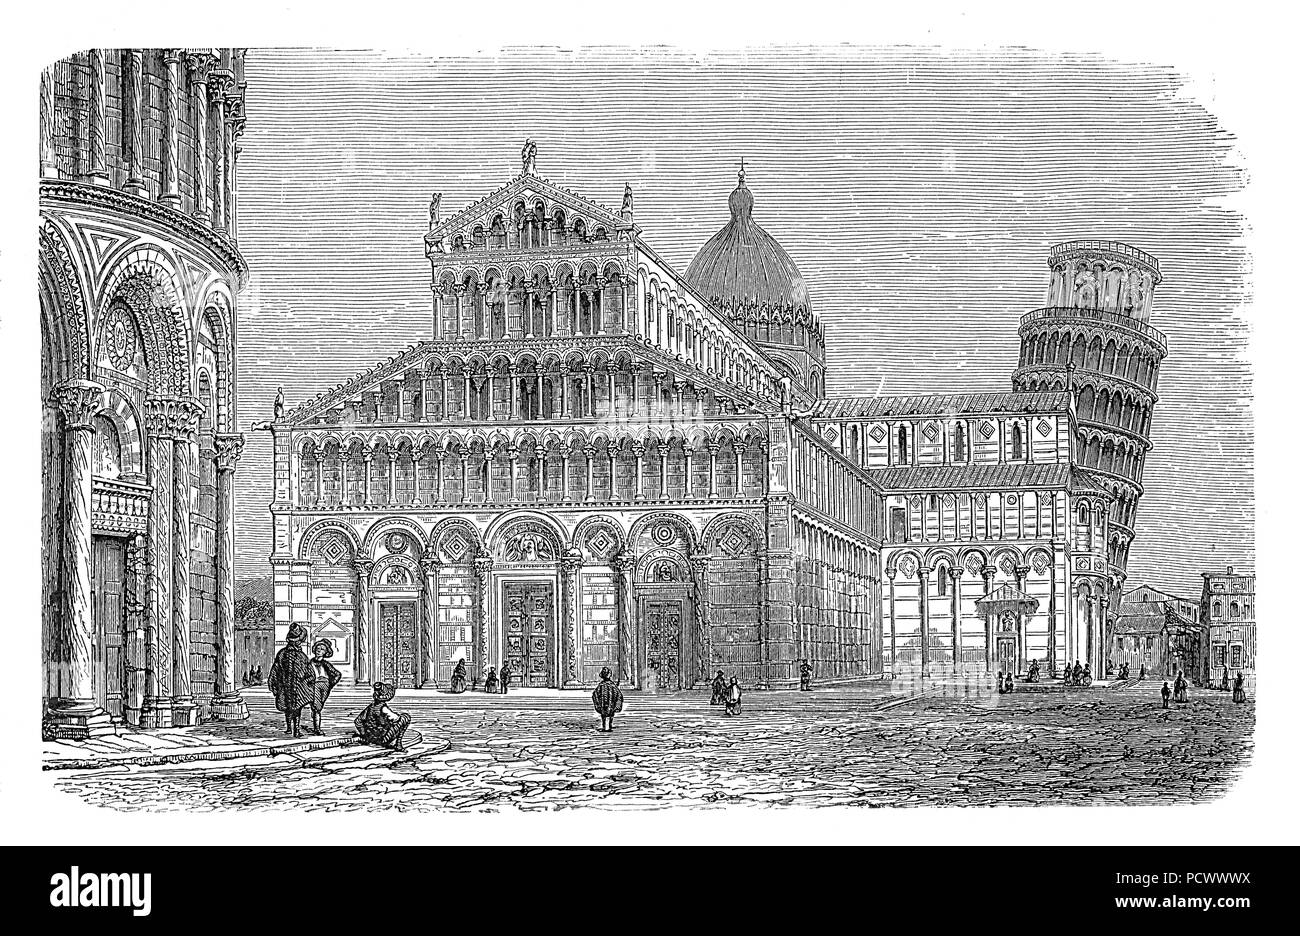 Vintage engraving of Pisa cathedral with the leaning tower in the Piazza dei Miracoli in Pisa, Italy. built in XI century in Pisan Romanesque architecture with byzantine and Islamic influences. - Stock Image